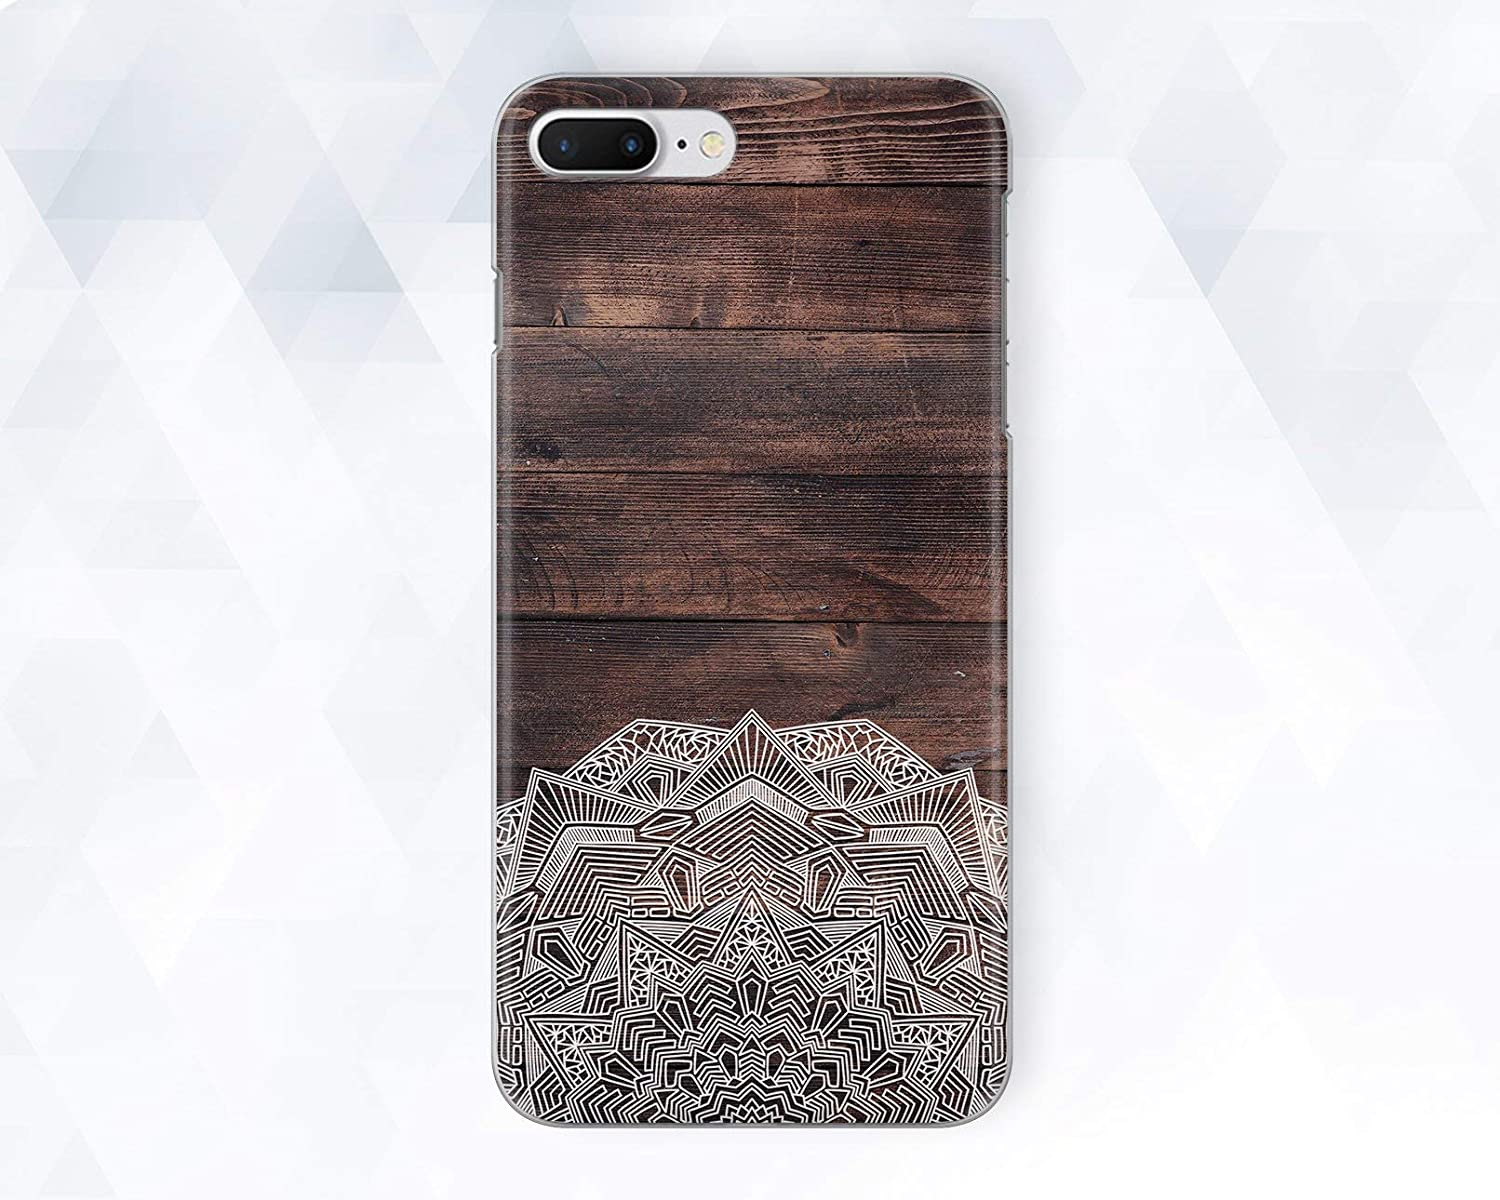 Old Vintage Wood Mandala Phone Case For iPhone 6 6s Plus 7 8 Plus Xs Max XR 10 Case Cover For Samsung Galaxy Note 8 9 S6 S7 S8 S9 Plus Edge